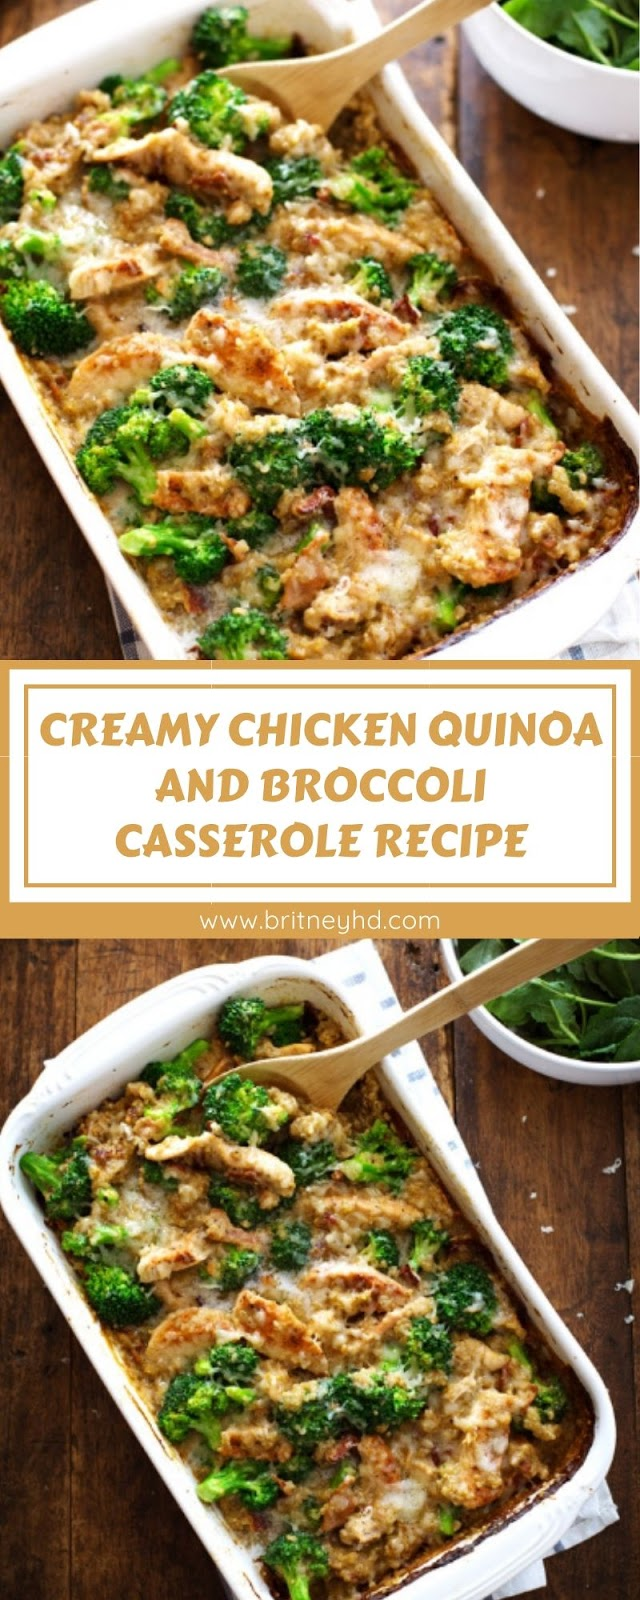 CREAMY CHICKEN QUINOA AND BROCCOLI CASSEROLE RECIPE